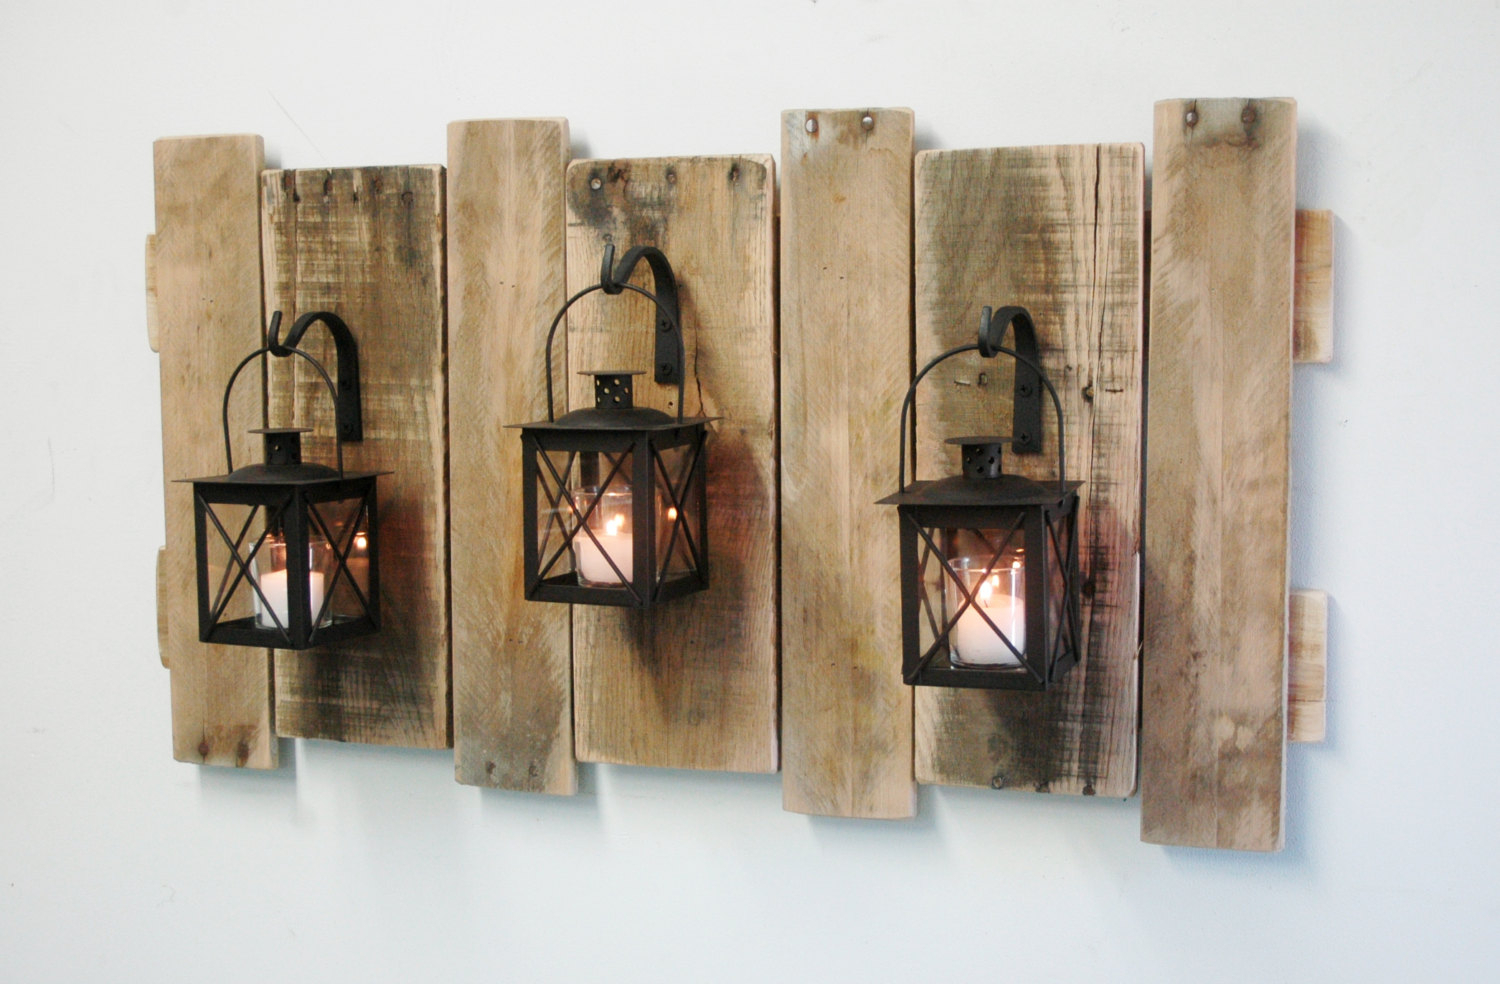 Chic Idea Large Rustic Wall Art Together With Decor Metal In Large Modern Industrial Wall Decor (Photo 21 of 30)